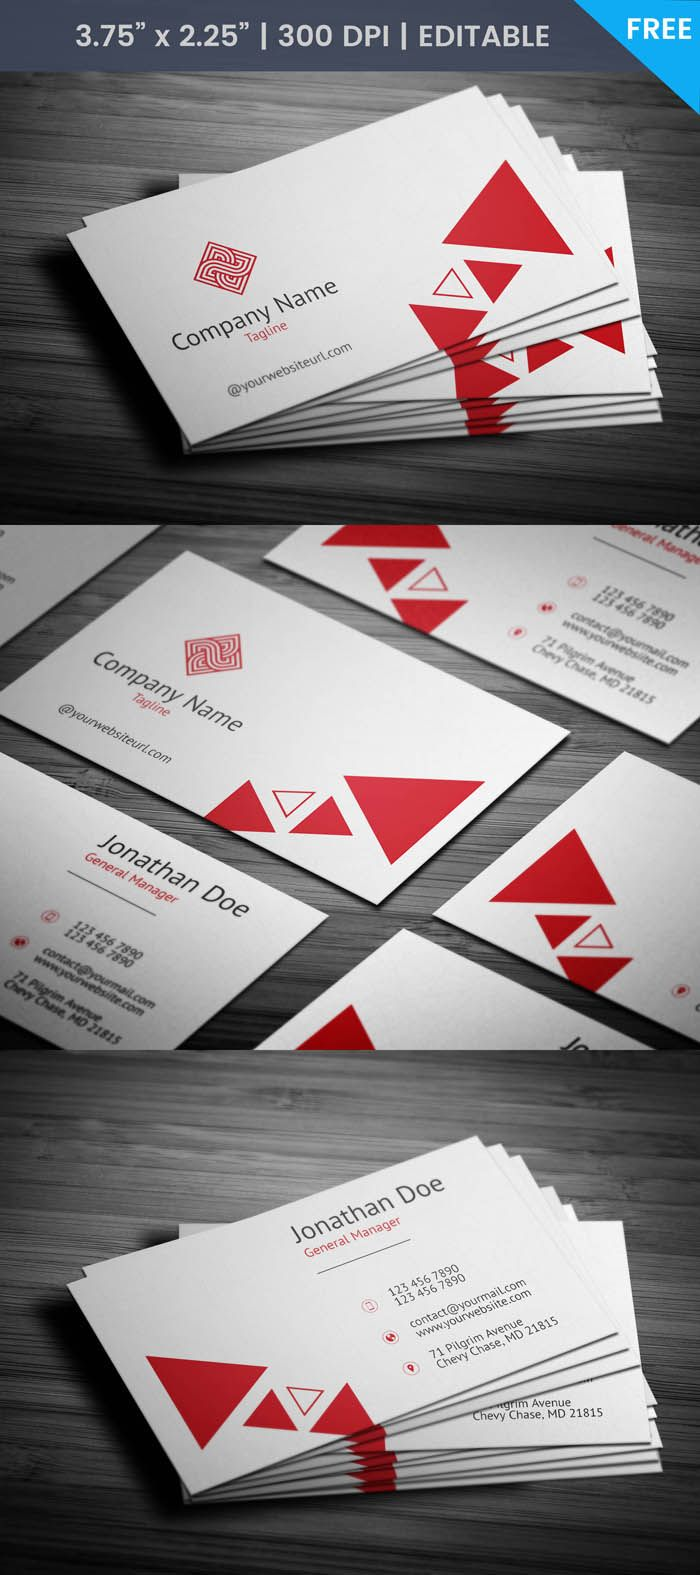 Free free barber shop business card business cards card templates free free barber shop business card business cards card templates and template cheaphphosting Images